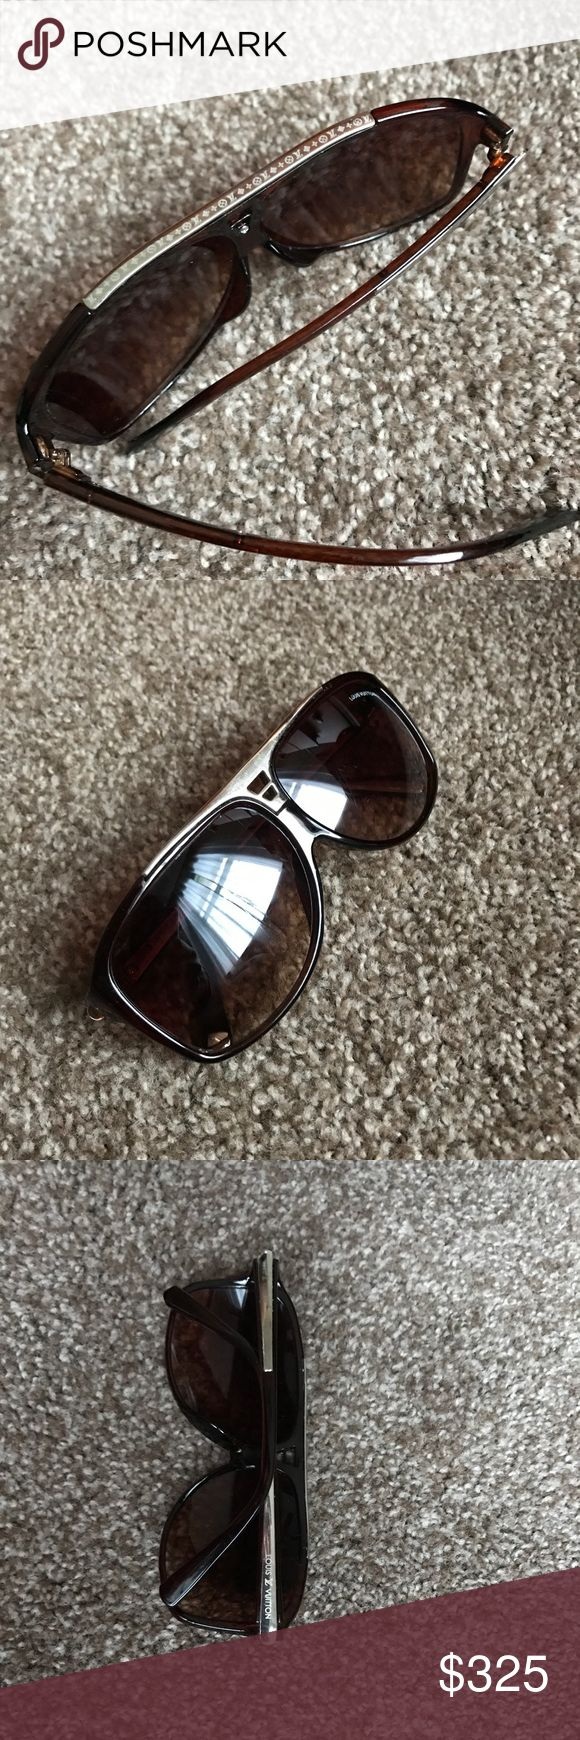 louis vuitton evidence sunglasses Does not come with cleaning rag that came with the glasses. But og lv glasses case. It does have a little scratch on the lense but it's not noticeable. Louis Vuitton Accessories Glasses